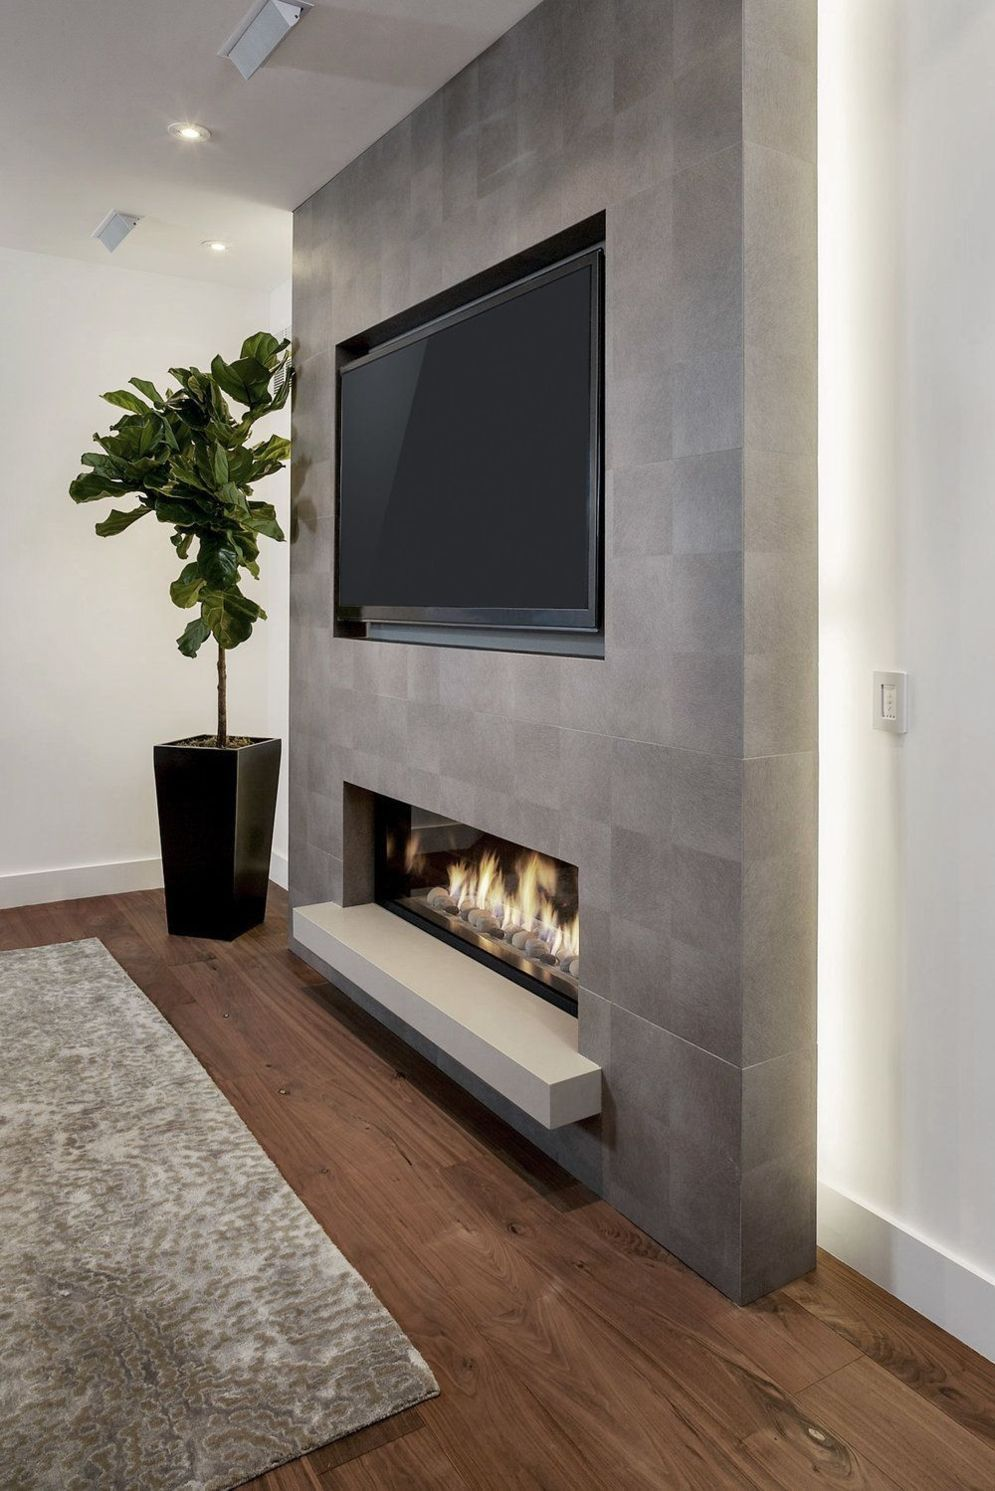 Best Fireplace TV Wall Ideas – The Good Advice For Mounting TV above Fireplace | SHAIROOM.COM